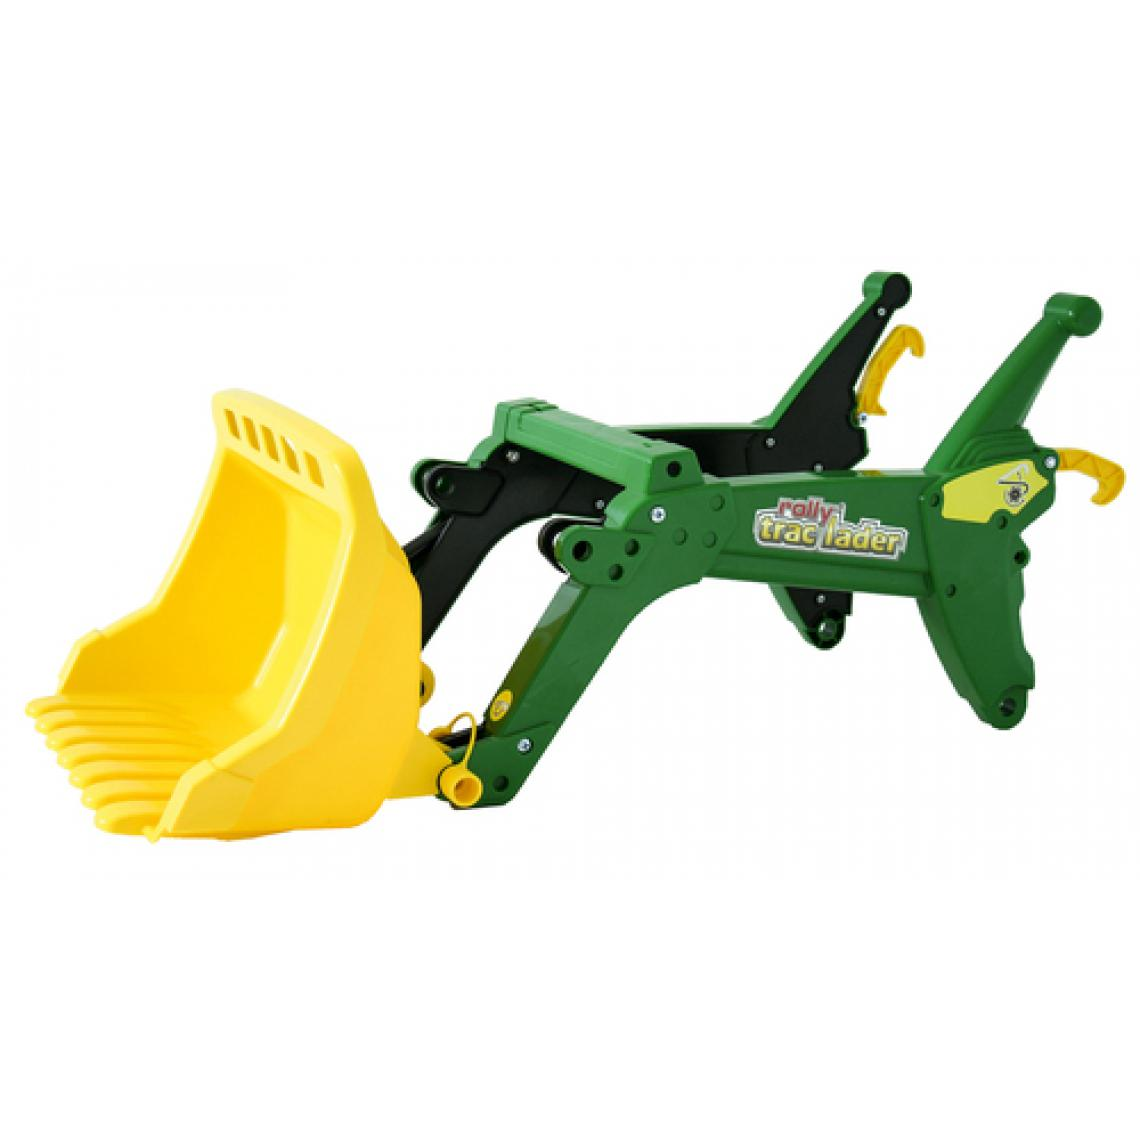 Rolly Toys Rolly Toys rollyTrac Lader Chargeur de tracteur